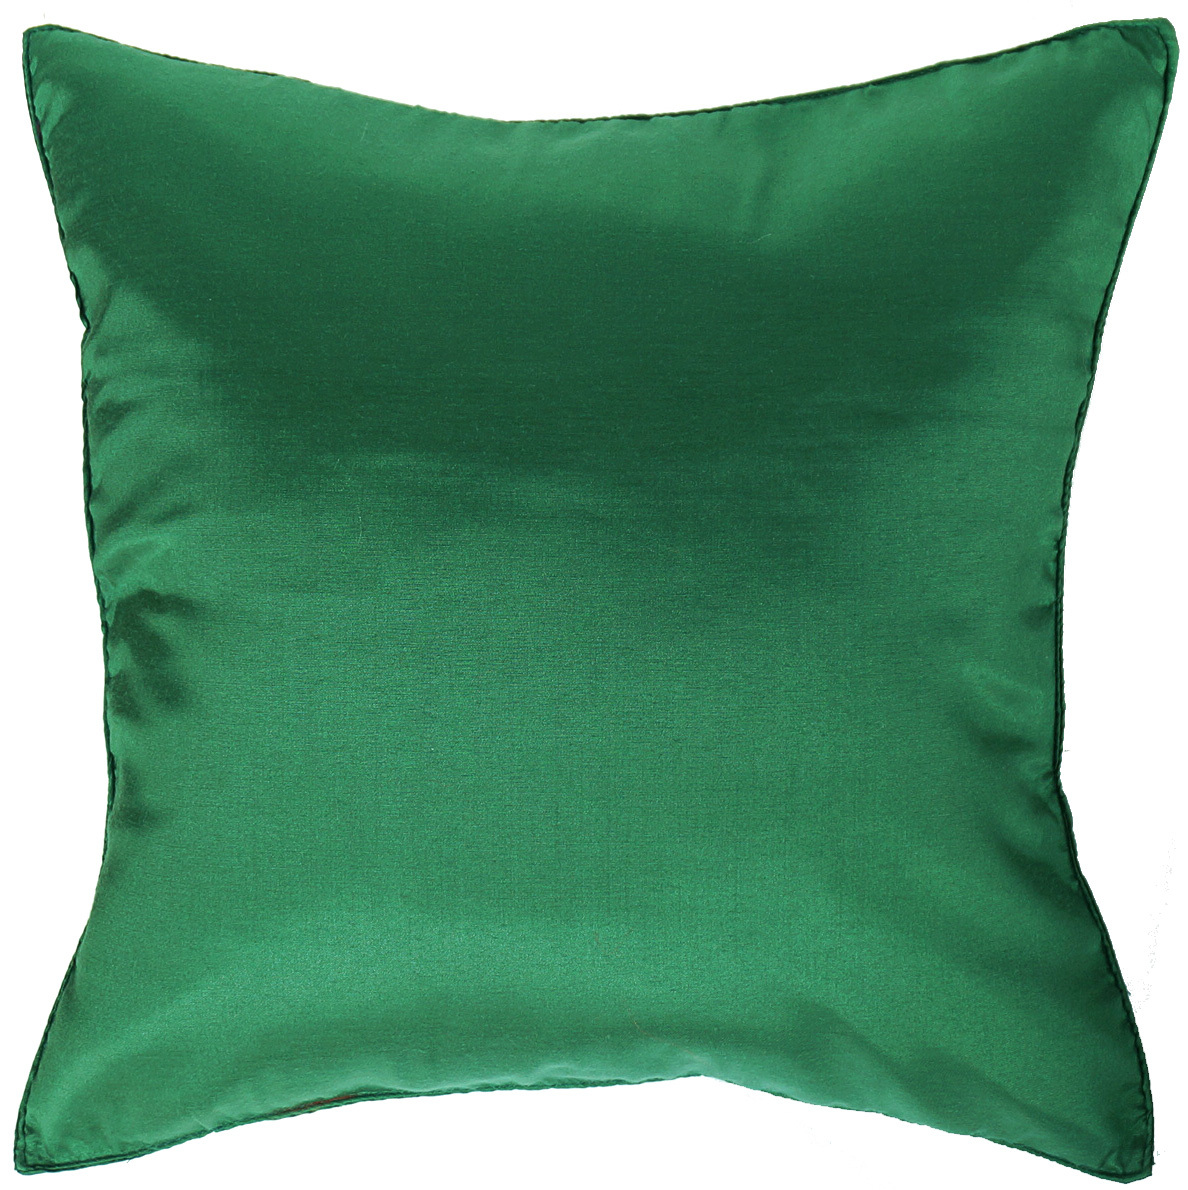 2 CHRISTMAS GREEN Silk THROW Decorative PILLOW COVERS for